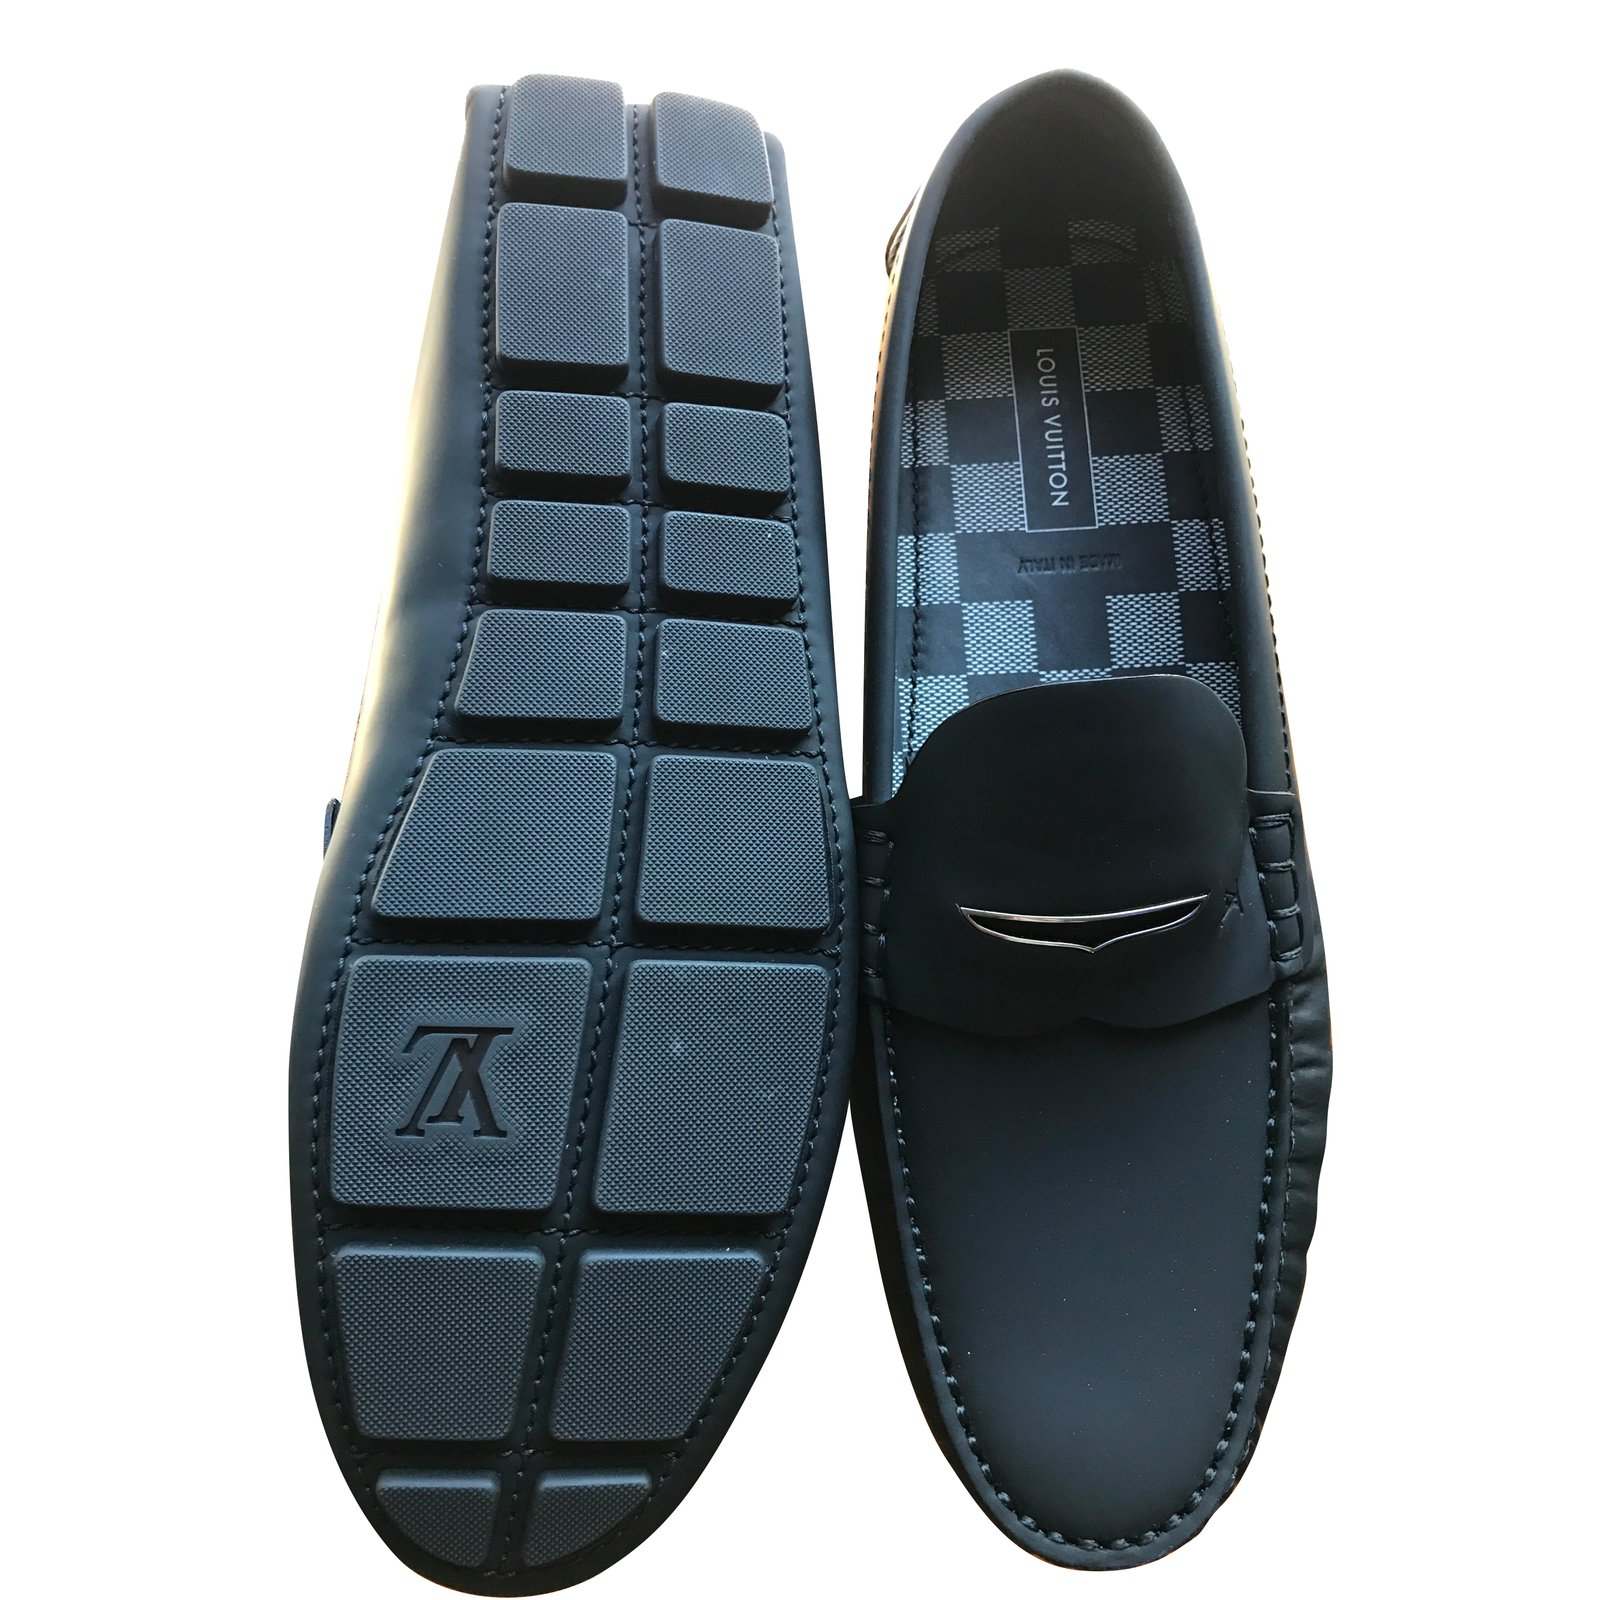 ccb11093b4d Louis Vuitton Shade Loafers Slip ons Loafers Slip ons Leather Navy blue  ref.43083 - Joli Closet